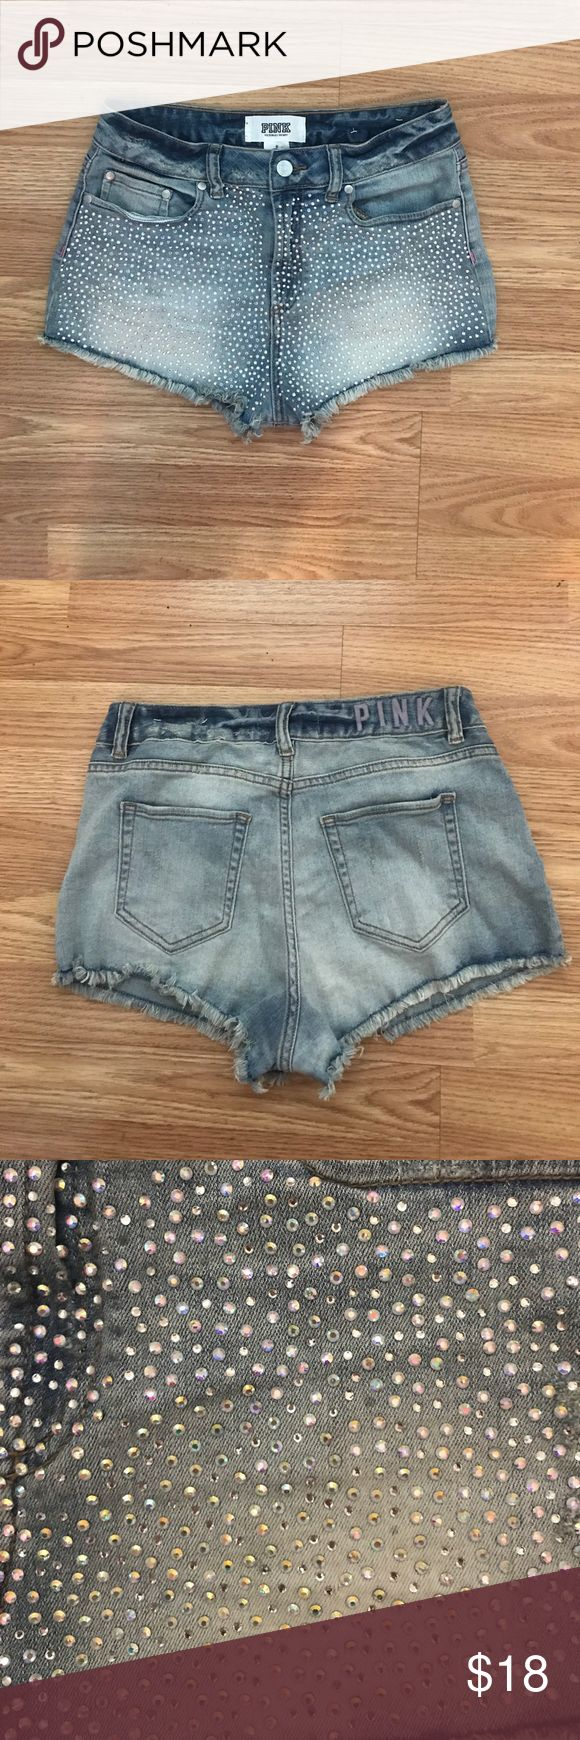 High Waisted Denim Sparkle Shorts High waisted, sparkly short shorts from VS Pink. Fits a 4/6. PINK Victoria's Secret Shorts Jean Shorts